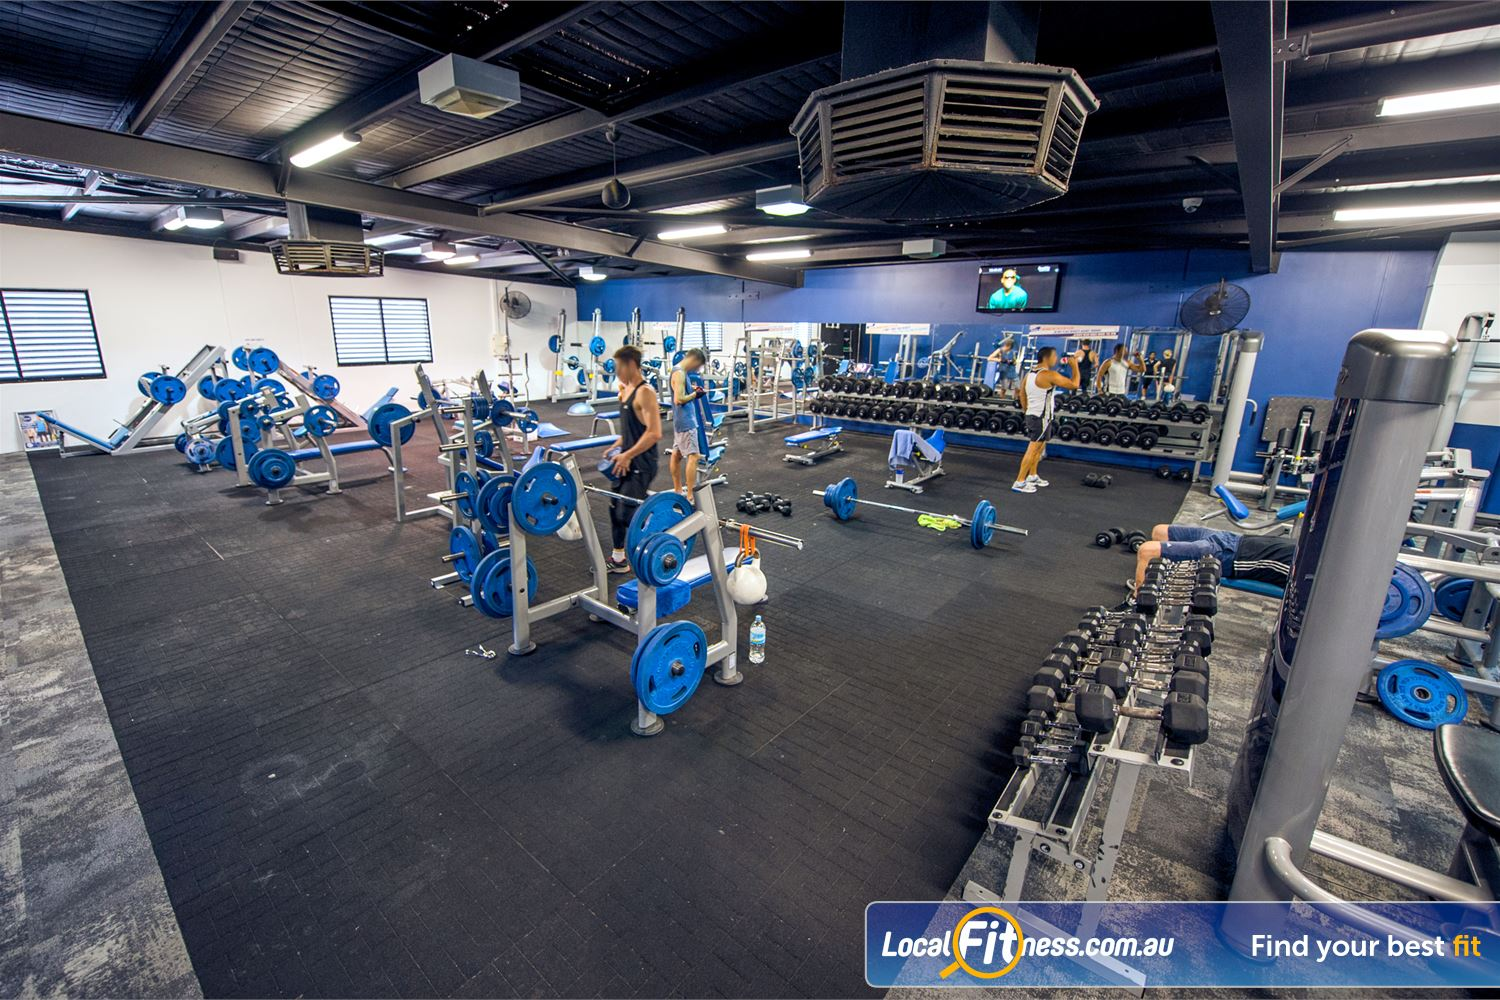 Goodlife Health Clubs Mount Lawley Our Mount Lawley gym includes a comprehensive range of dumbbells and barbells.